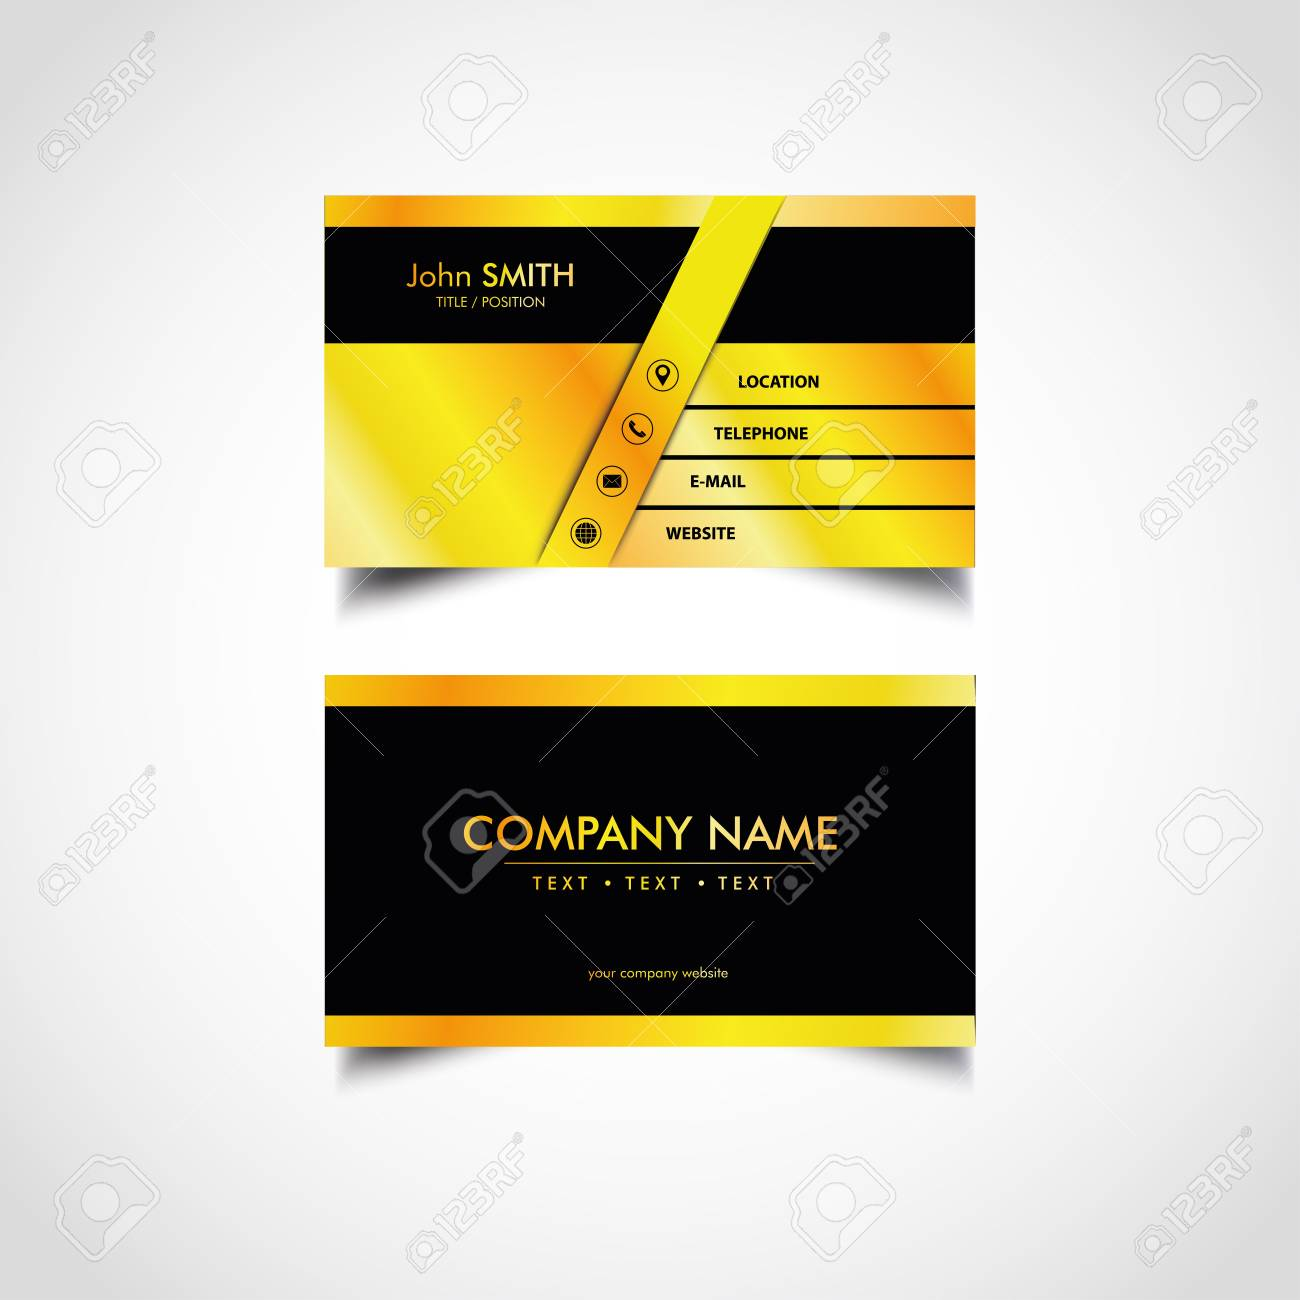 Golden business card templates design vector illustration royalty golden business card templates design vector illustration stock vector 96106844 reheart Gallery